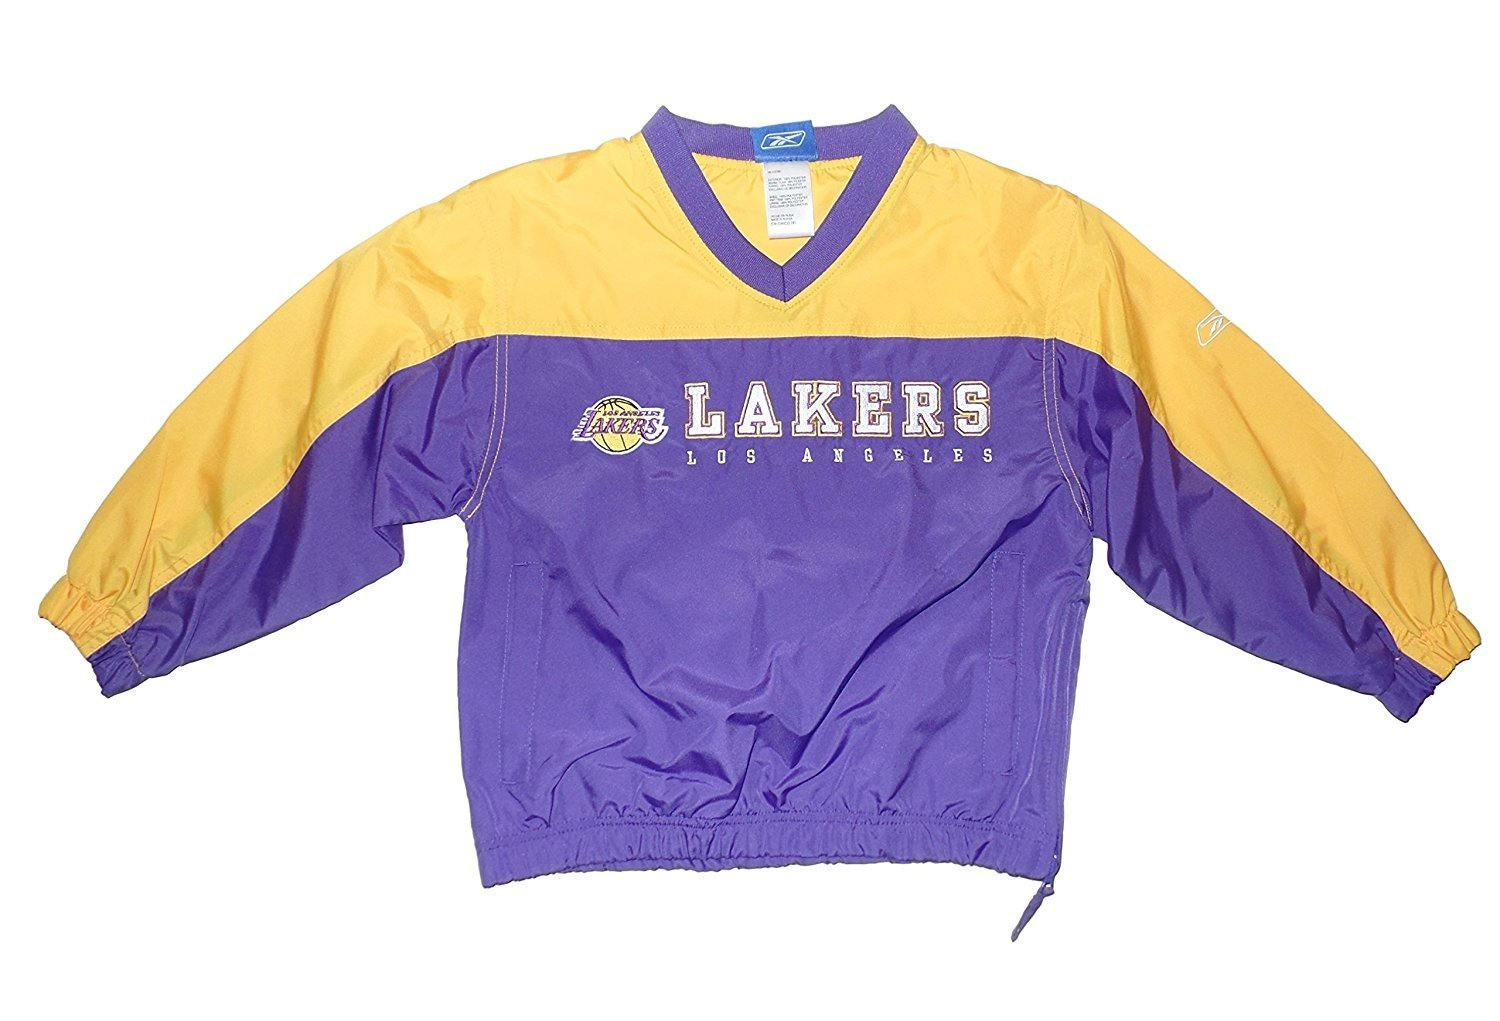 Los Angeles Lakers juventud Warmup chaqueta, Atlético ...